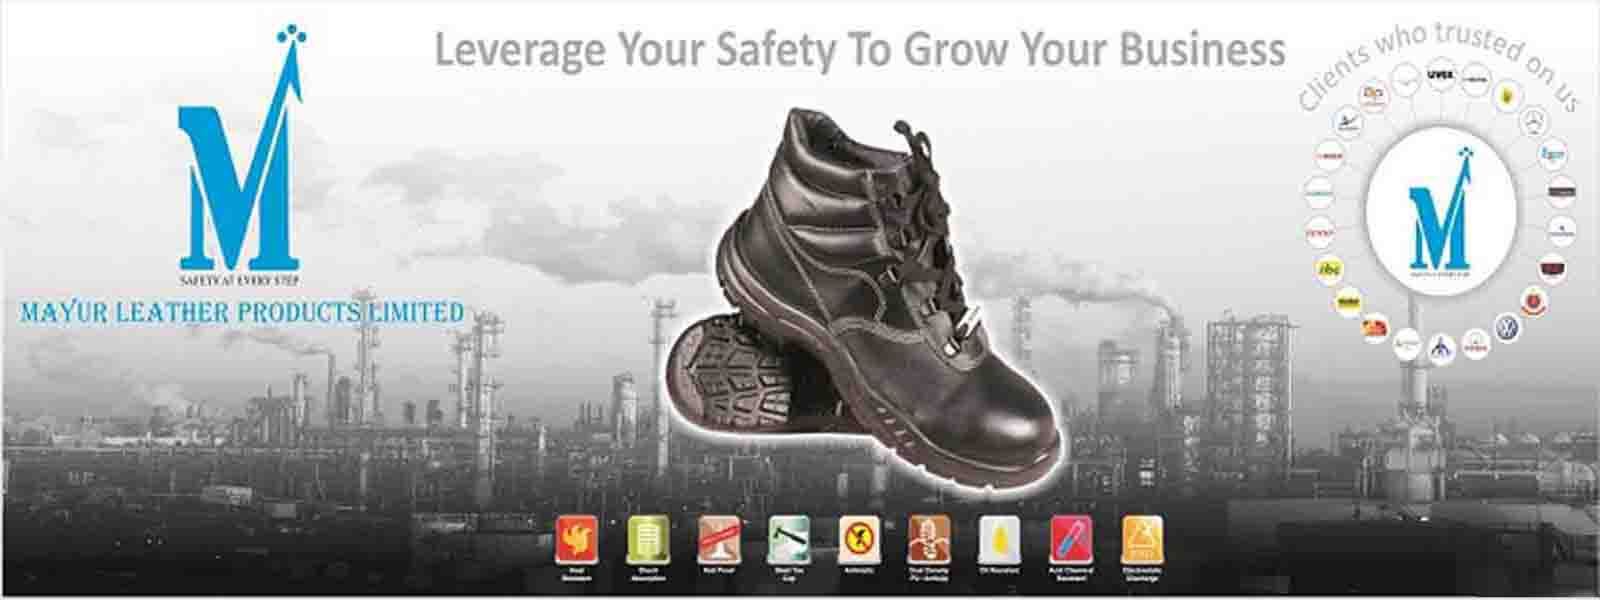 MAYUR LEATHER PRODUCTS LIMITED